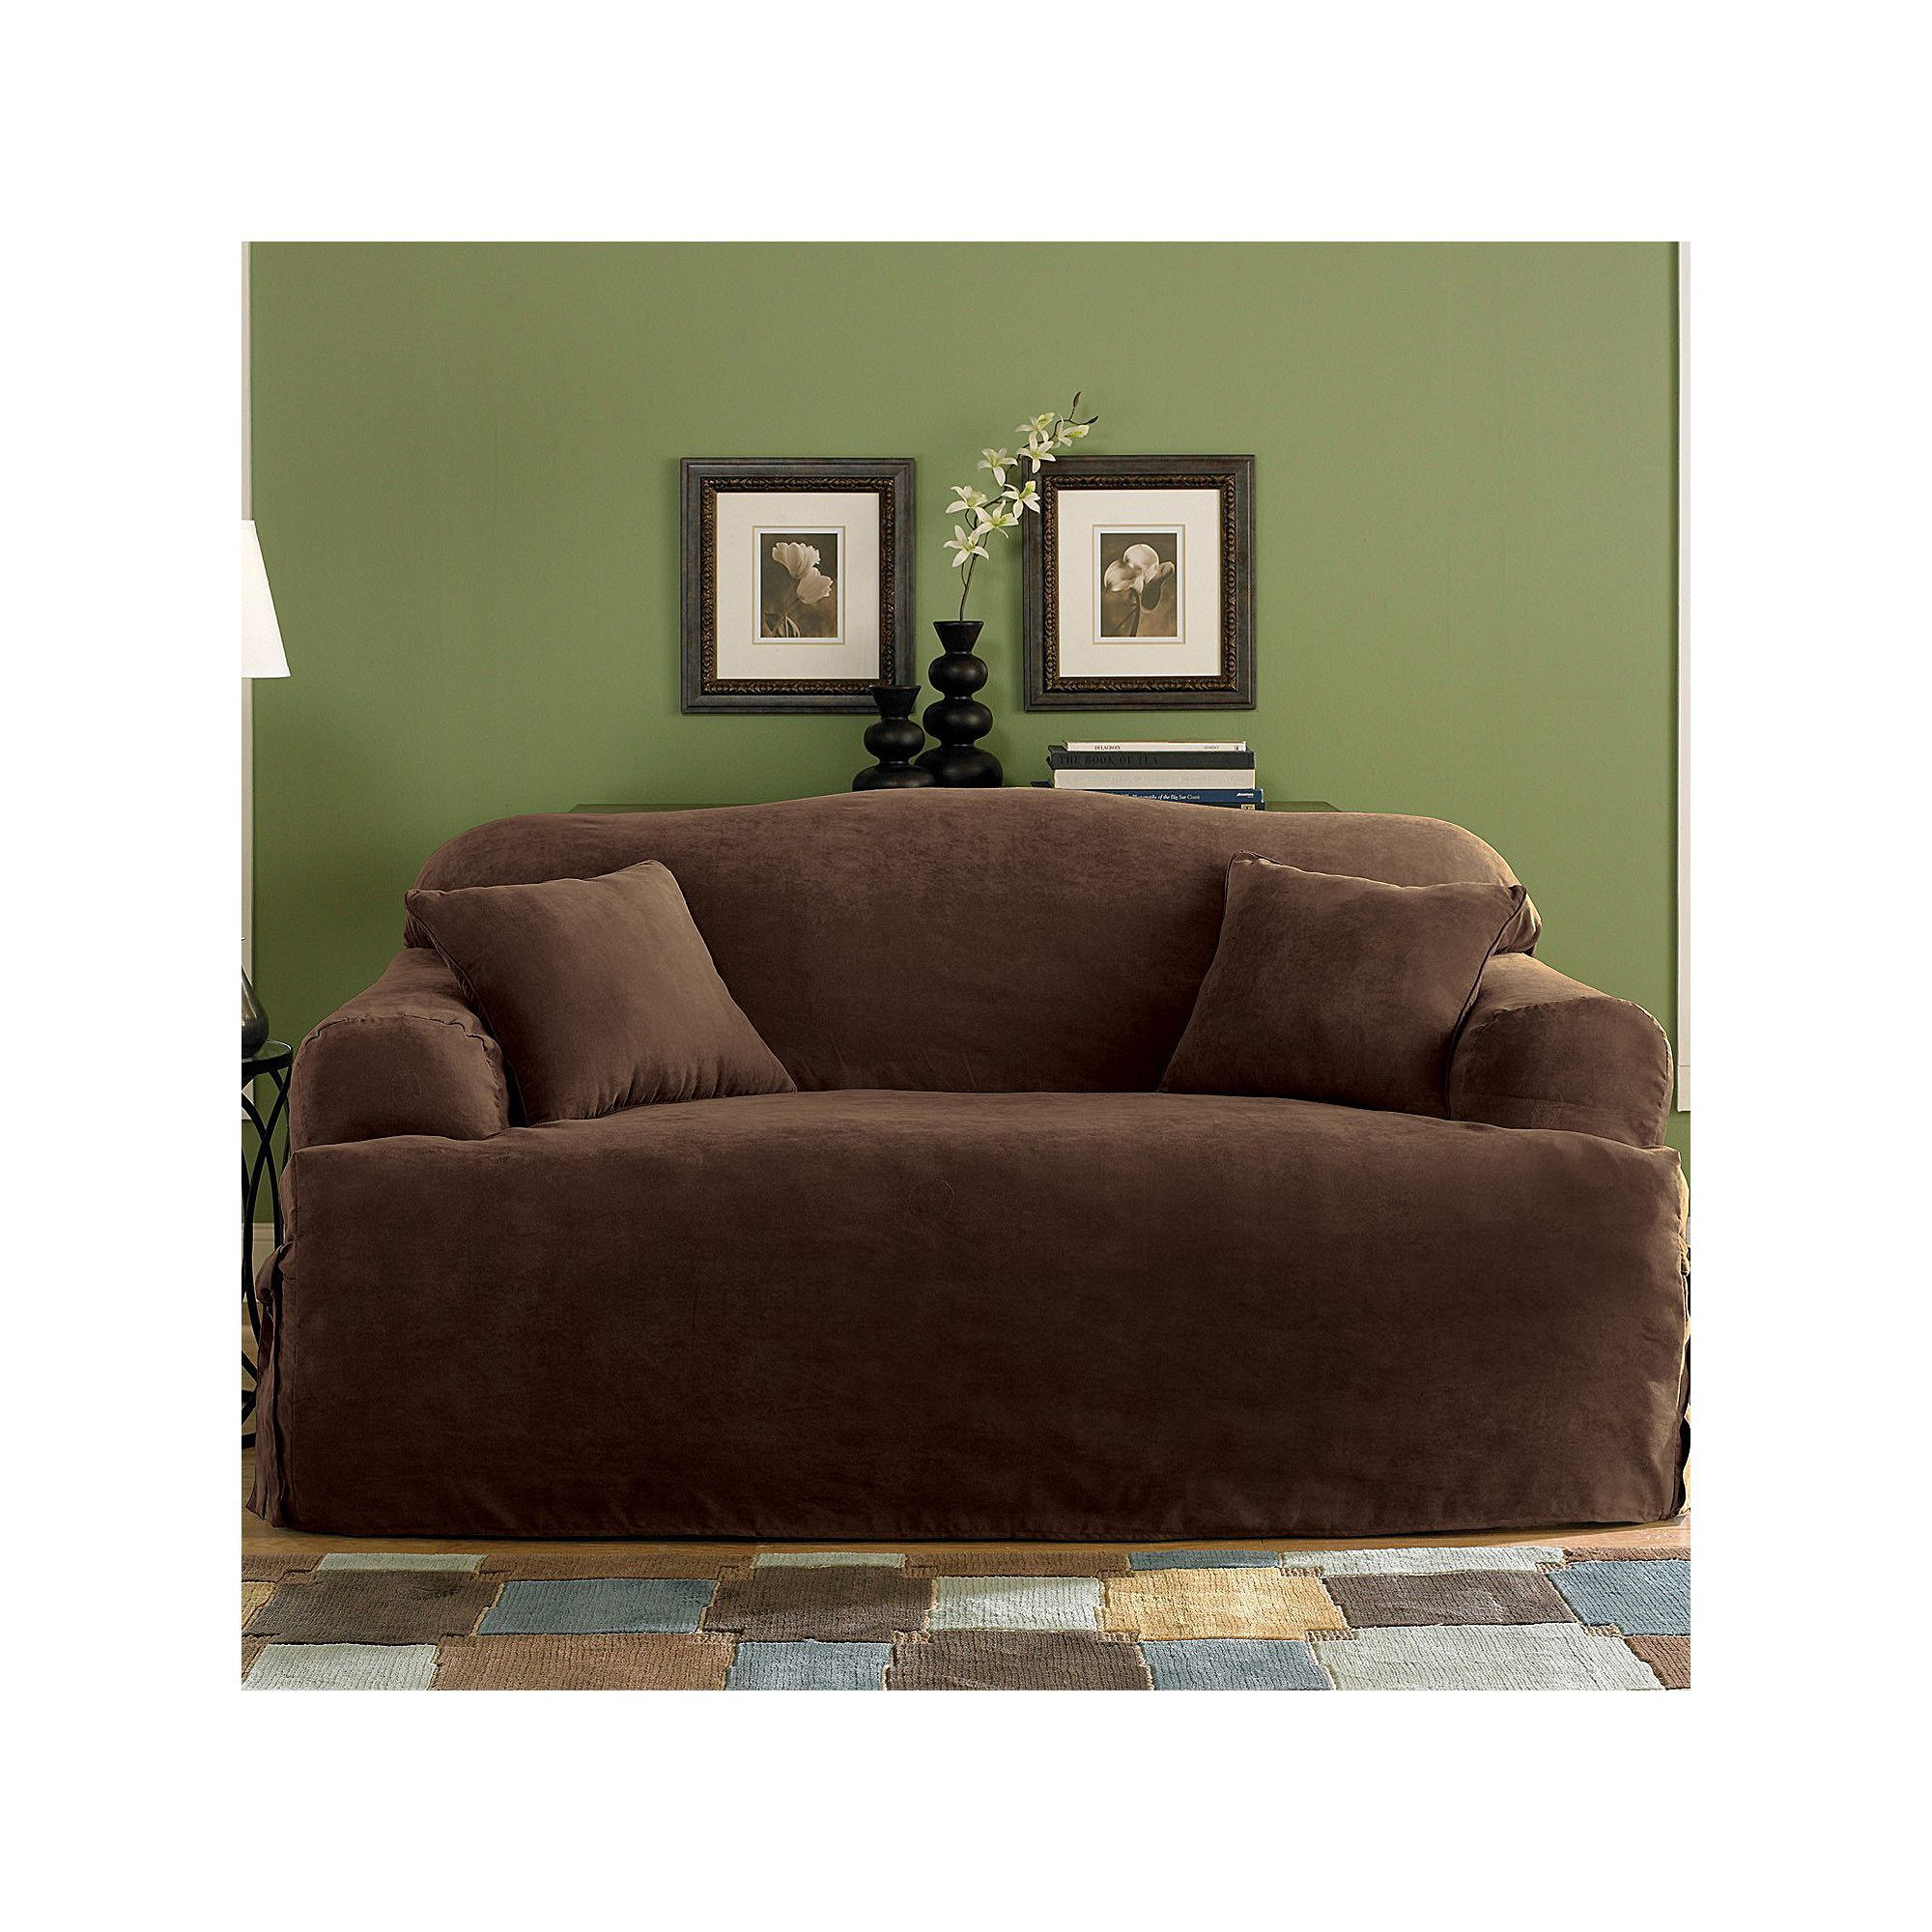 Faux Suede Sofa Cover Leather Cleaning Services Protector Maytex Piped Non